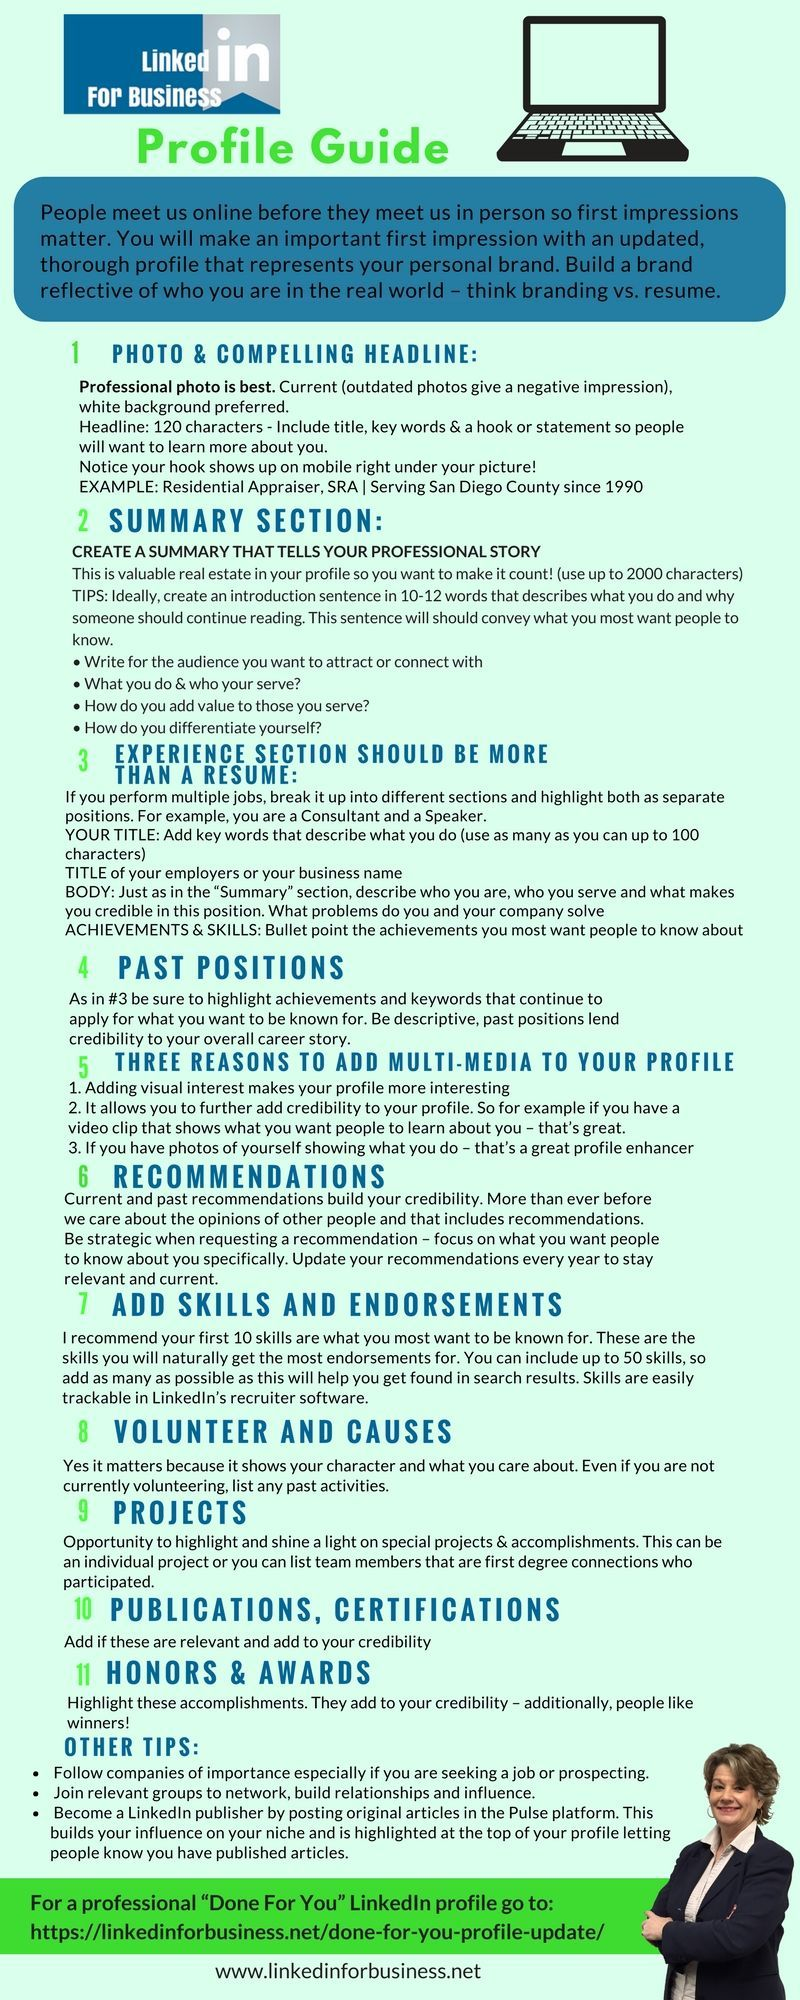 Designing a compelling linkedin profile guide infographic